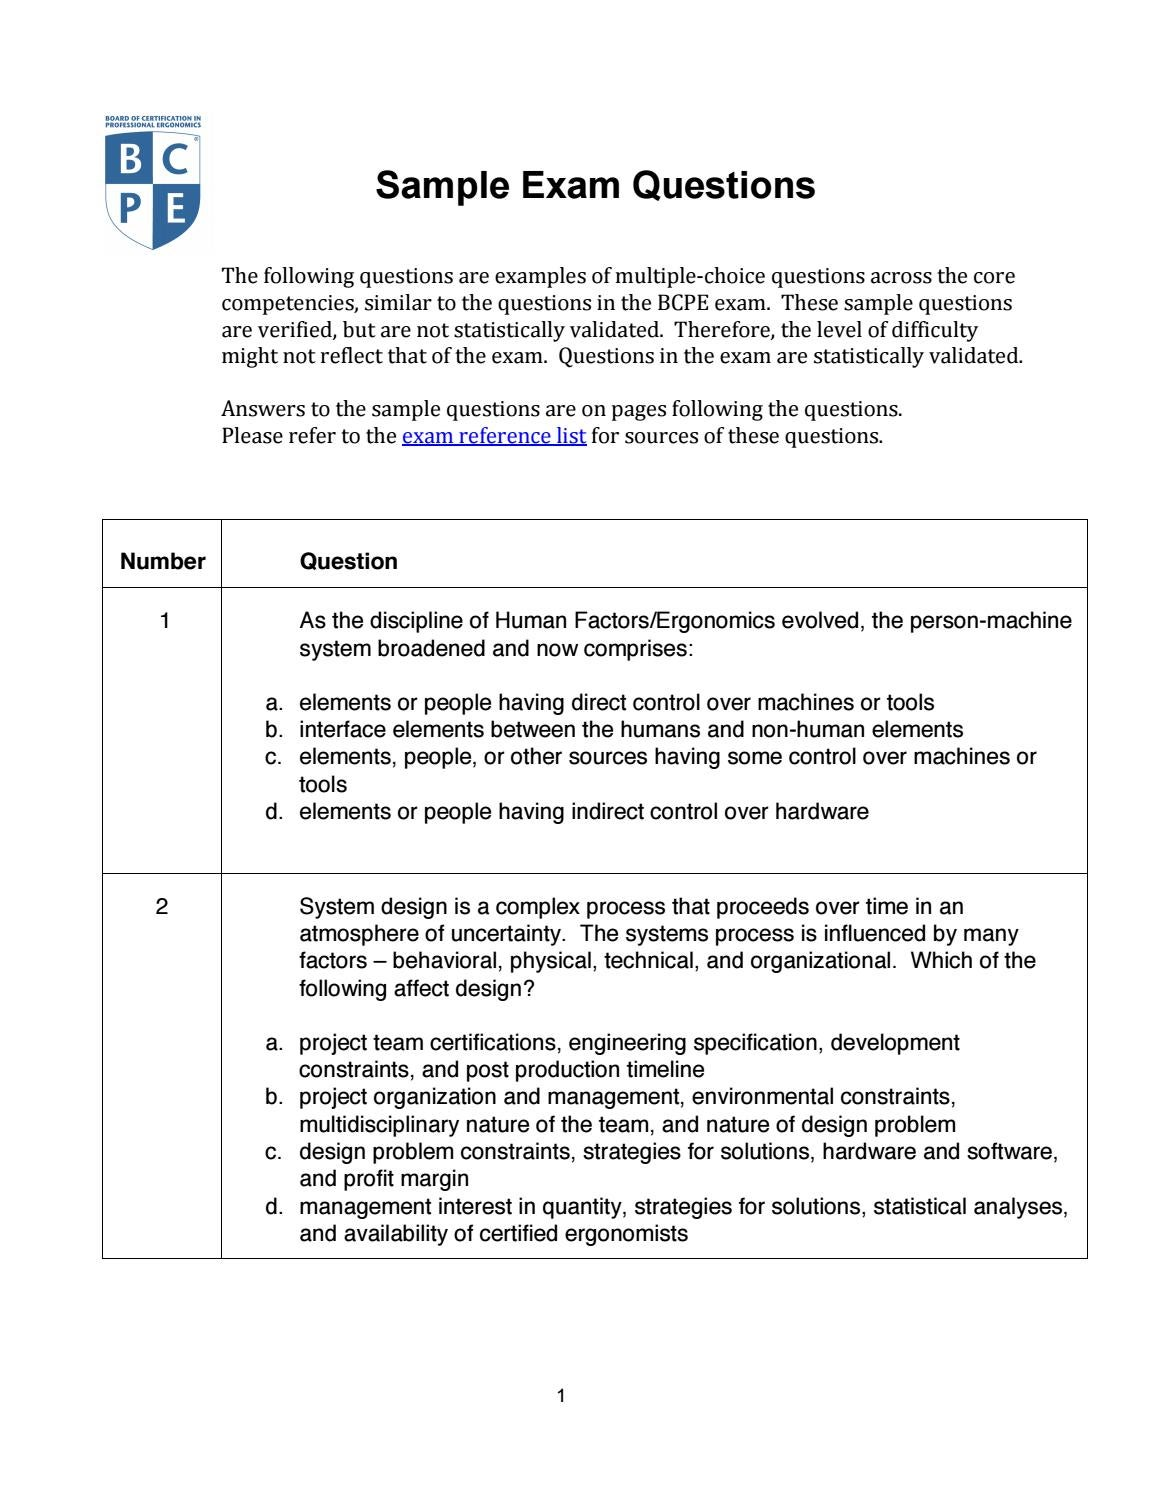 M bcpe sample questions answers jul141 by van n gassa issuu 1betcityfo Choice Image